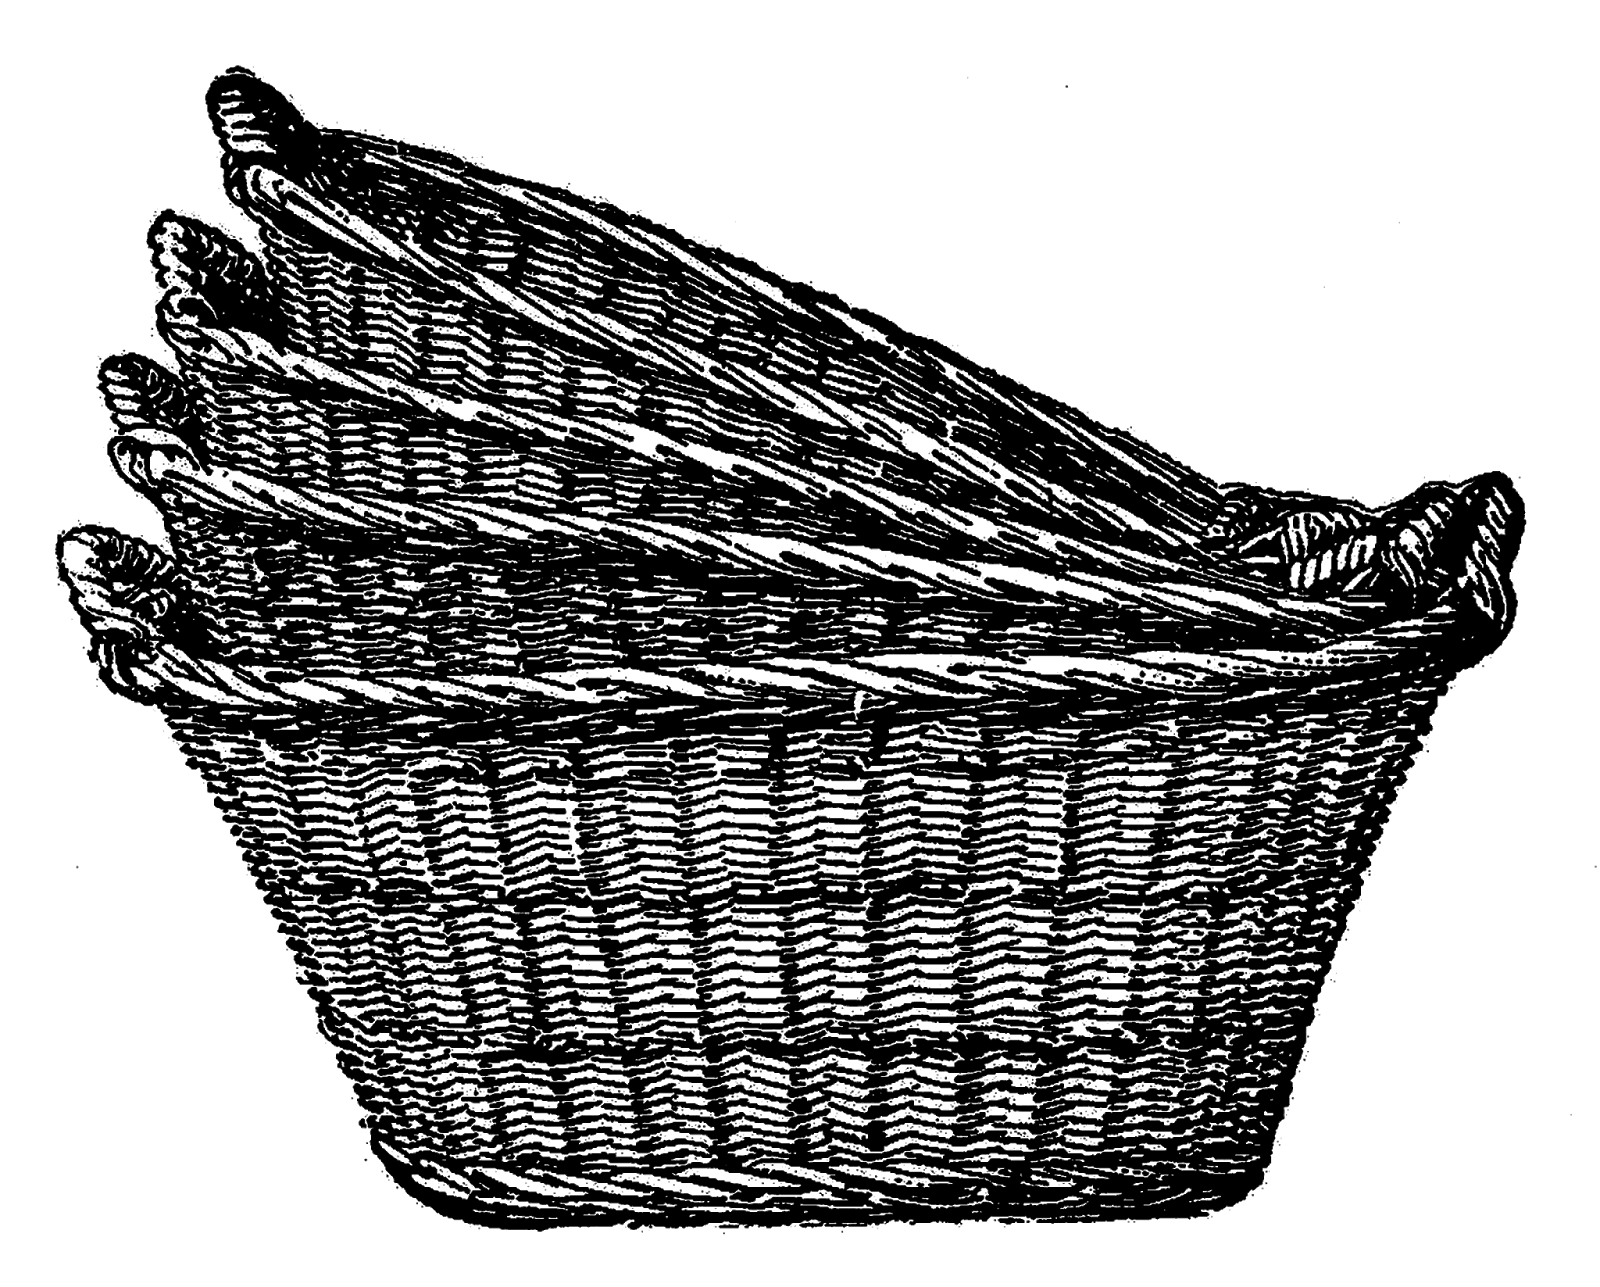 Antique Images: Digital Clip Art of 4 Wicker Laundry Baskets Image.